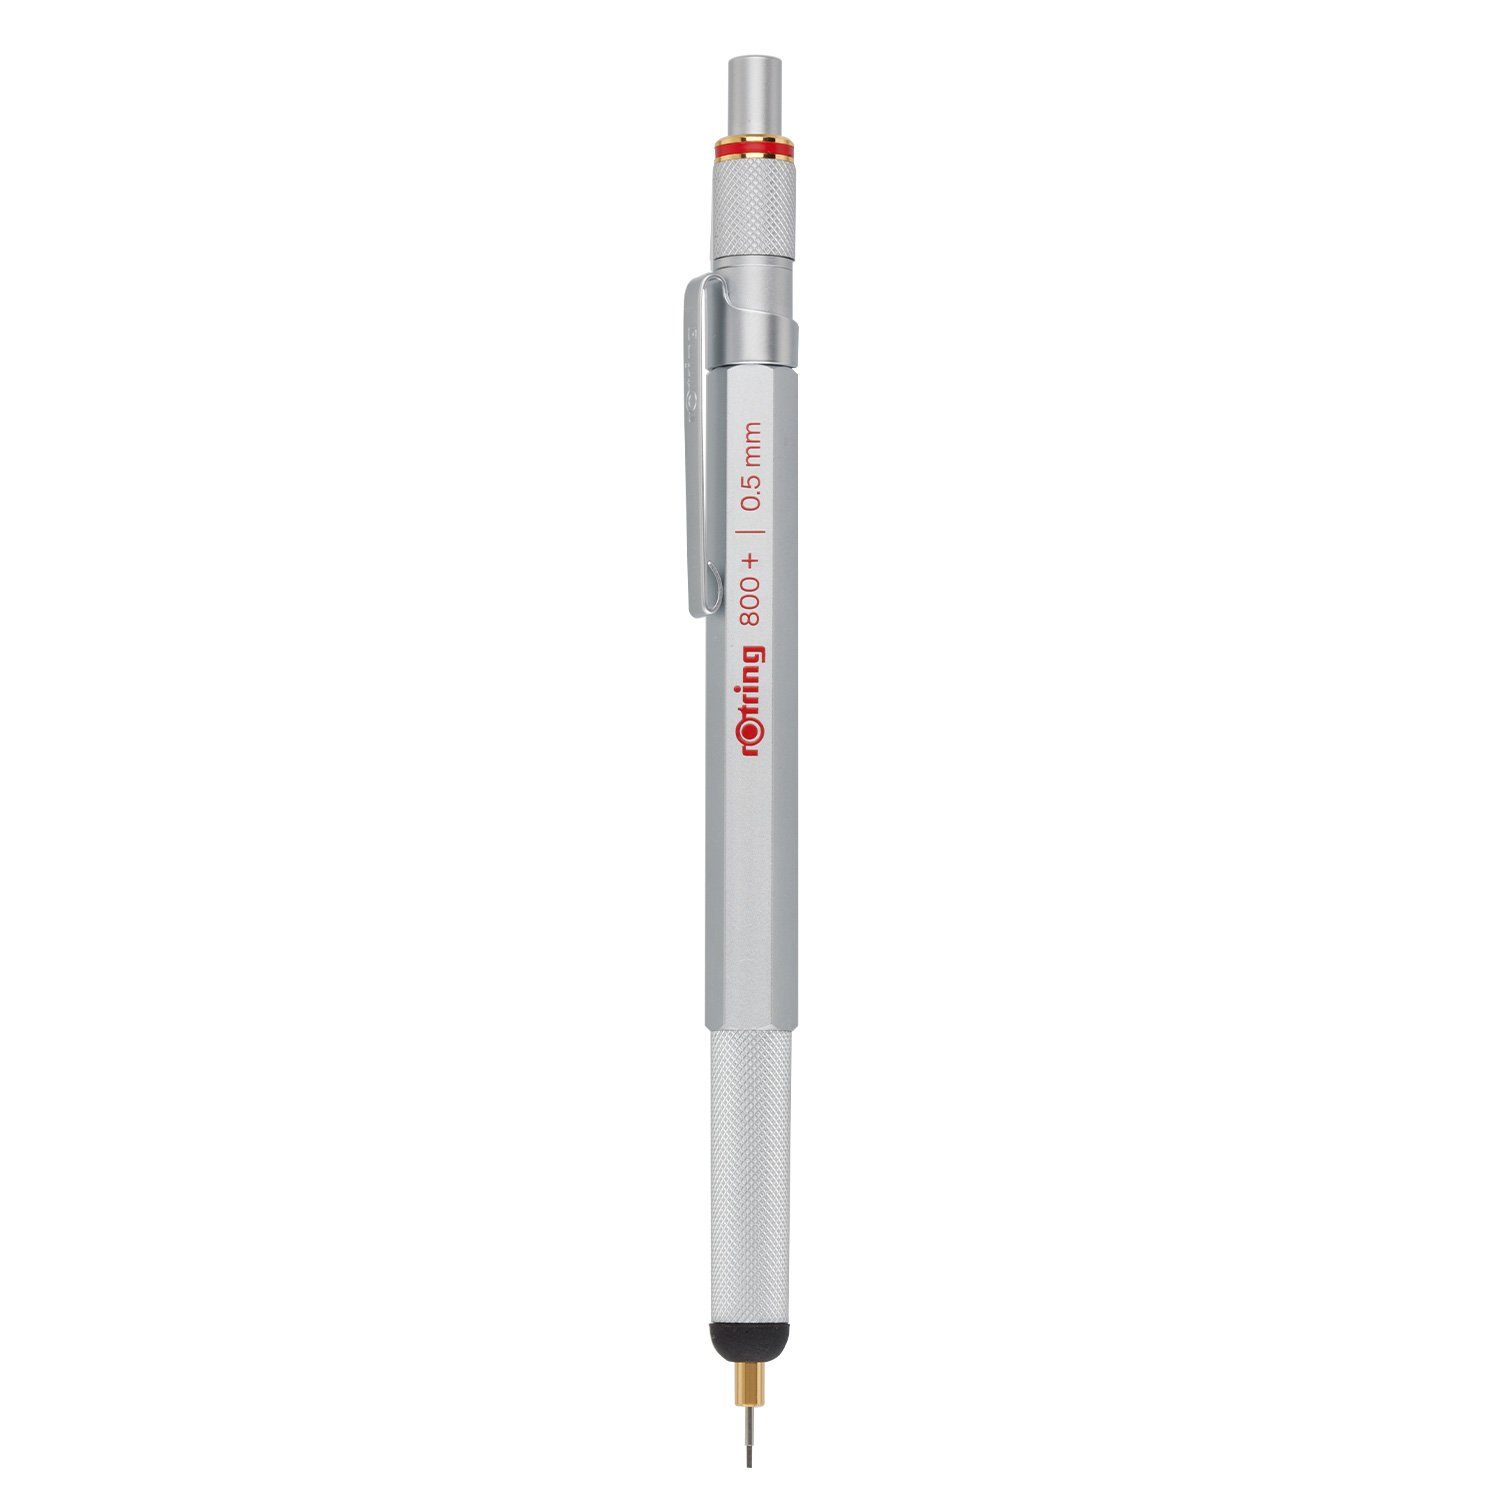 rOtring 1900183 800+ Mechanical Pencil and Touchscreen Stylus, 0.5 mm, Silver Barrel by Rotring (Image #3)